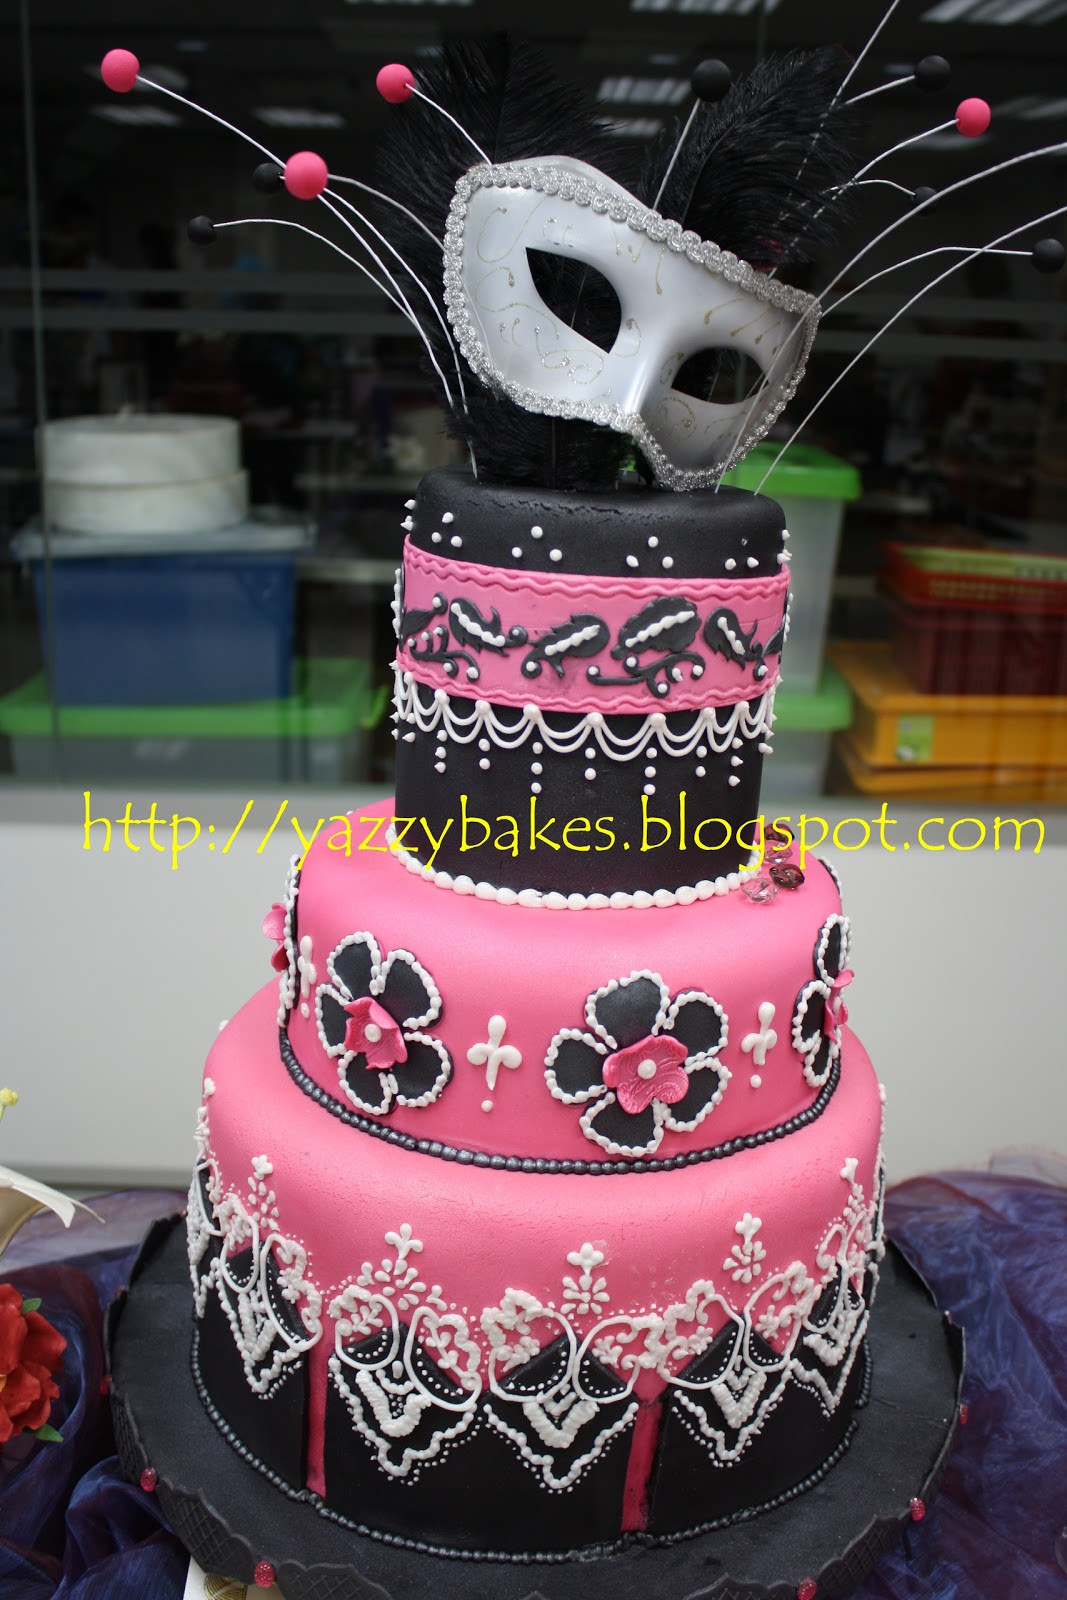 Masquerade Wedding Cakes  Yazzy Bakes Masquerade Themed Wedding Cake